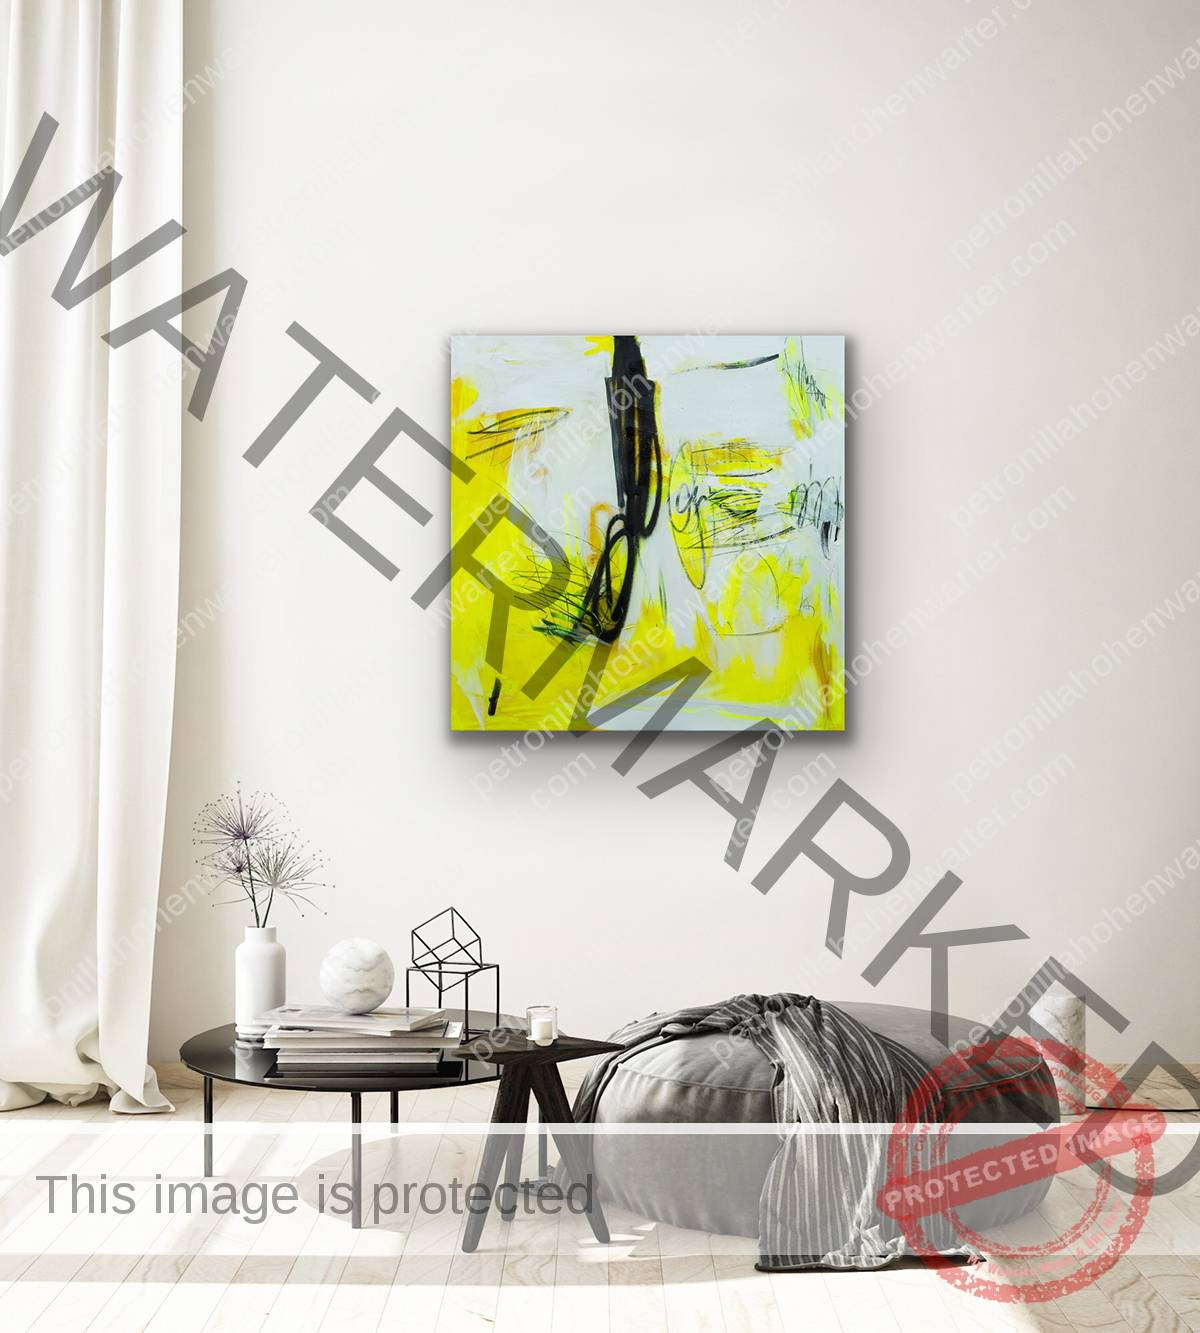 floating connected love petronilla hohenwarter art interior kunst wohnen